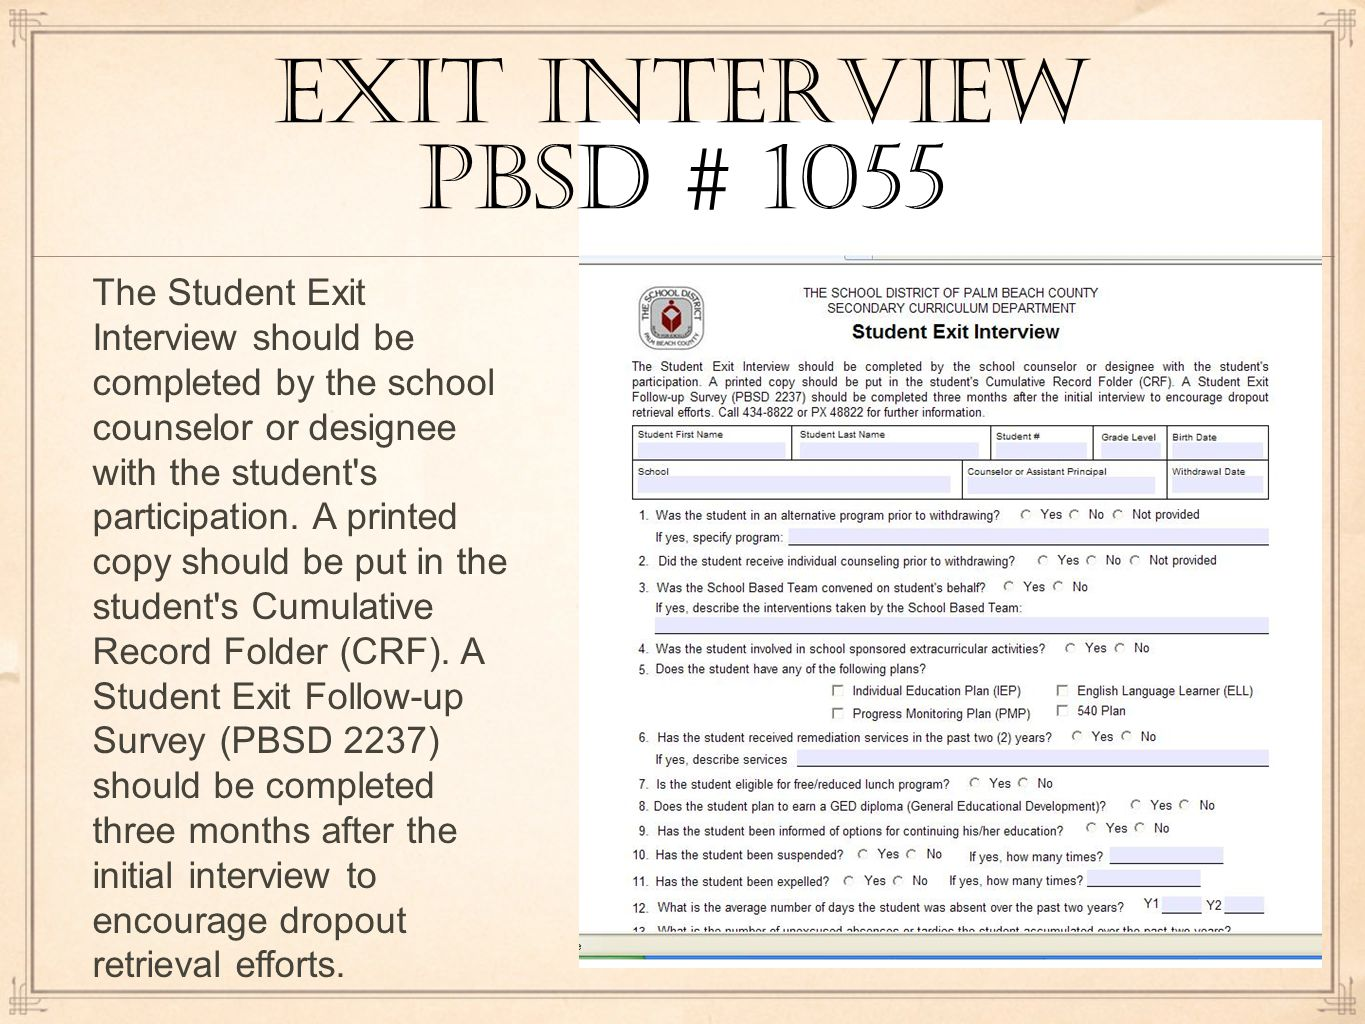 EXIT INTERVIEW PBSD # 1055 The Student Exit Interview should be completed by the school counselor or designee with the student s participation.